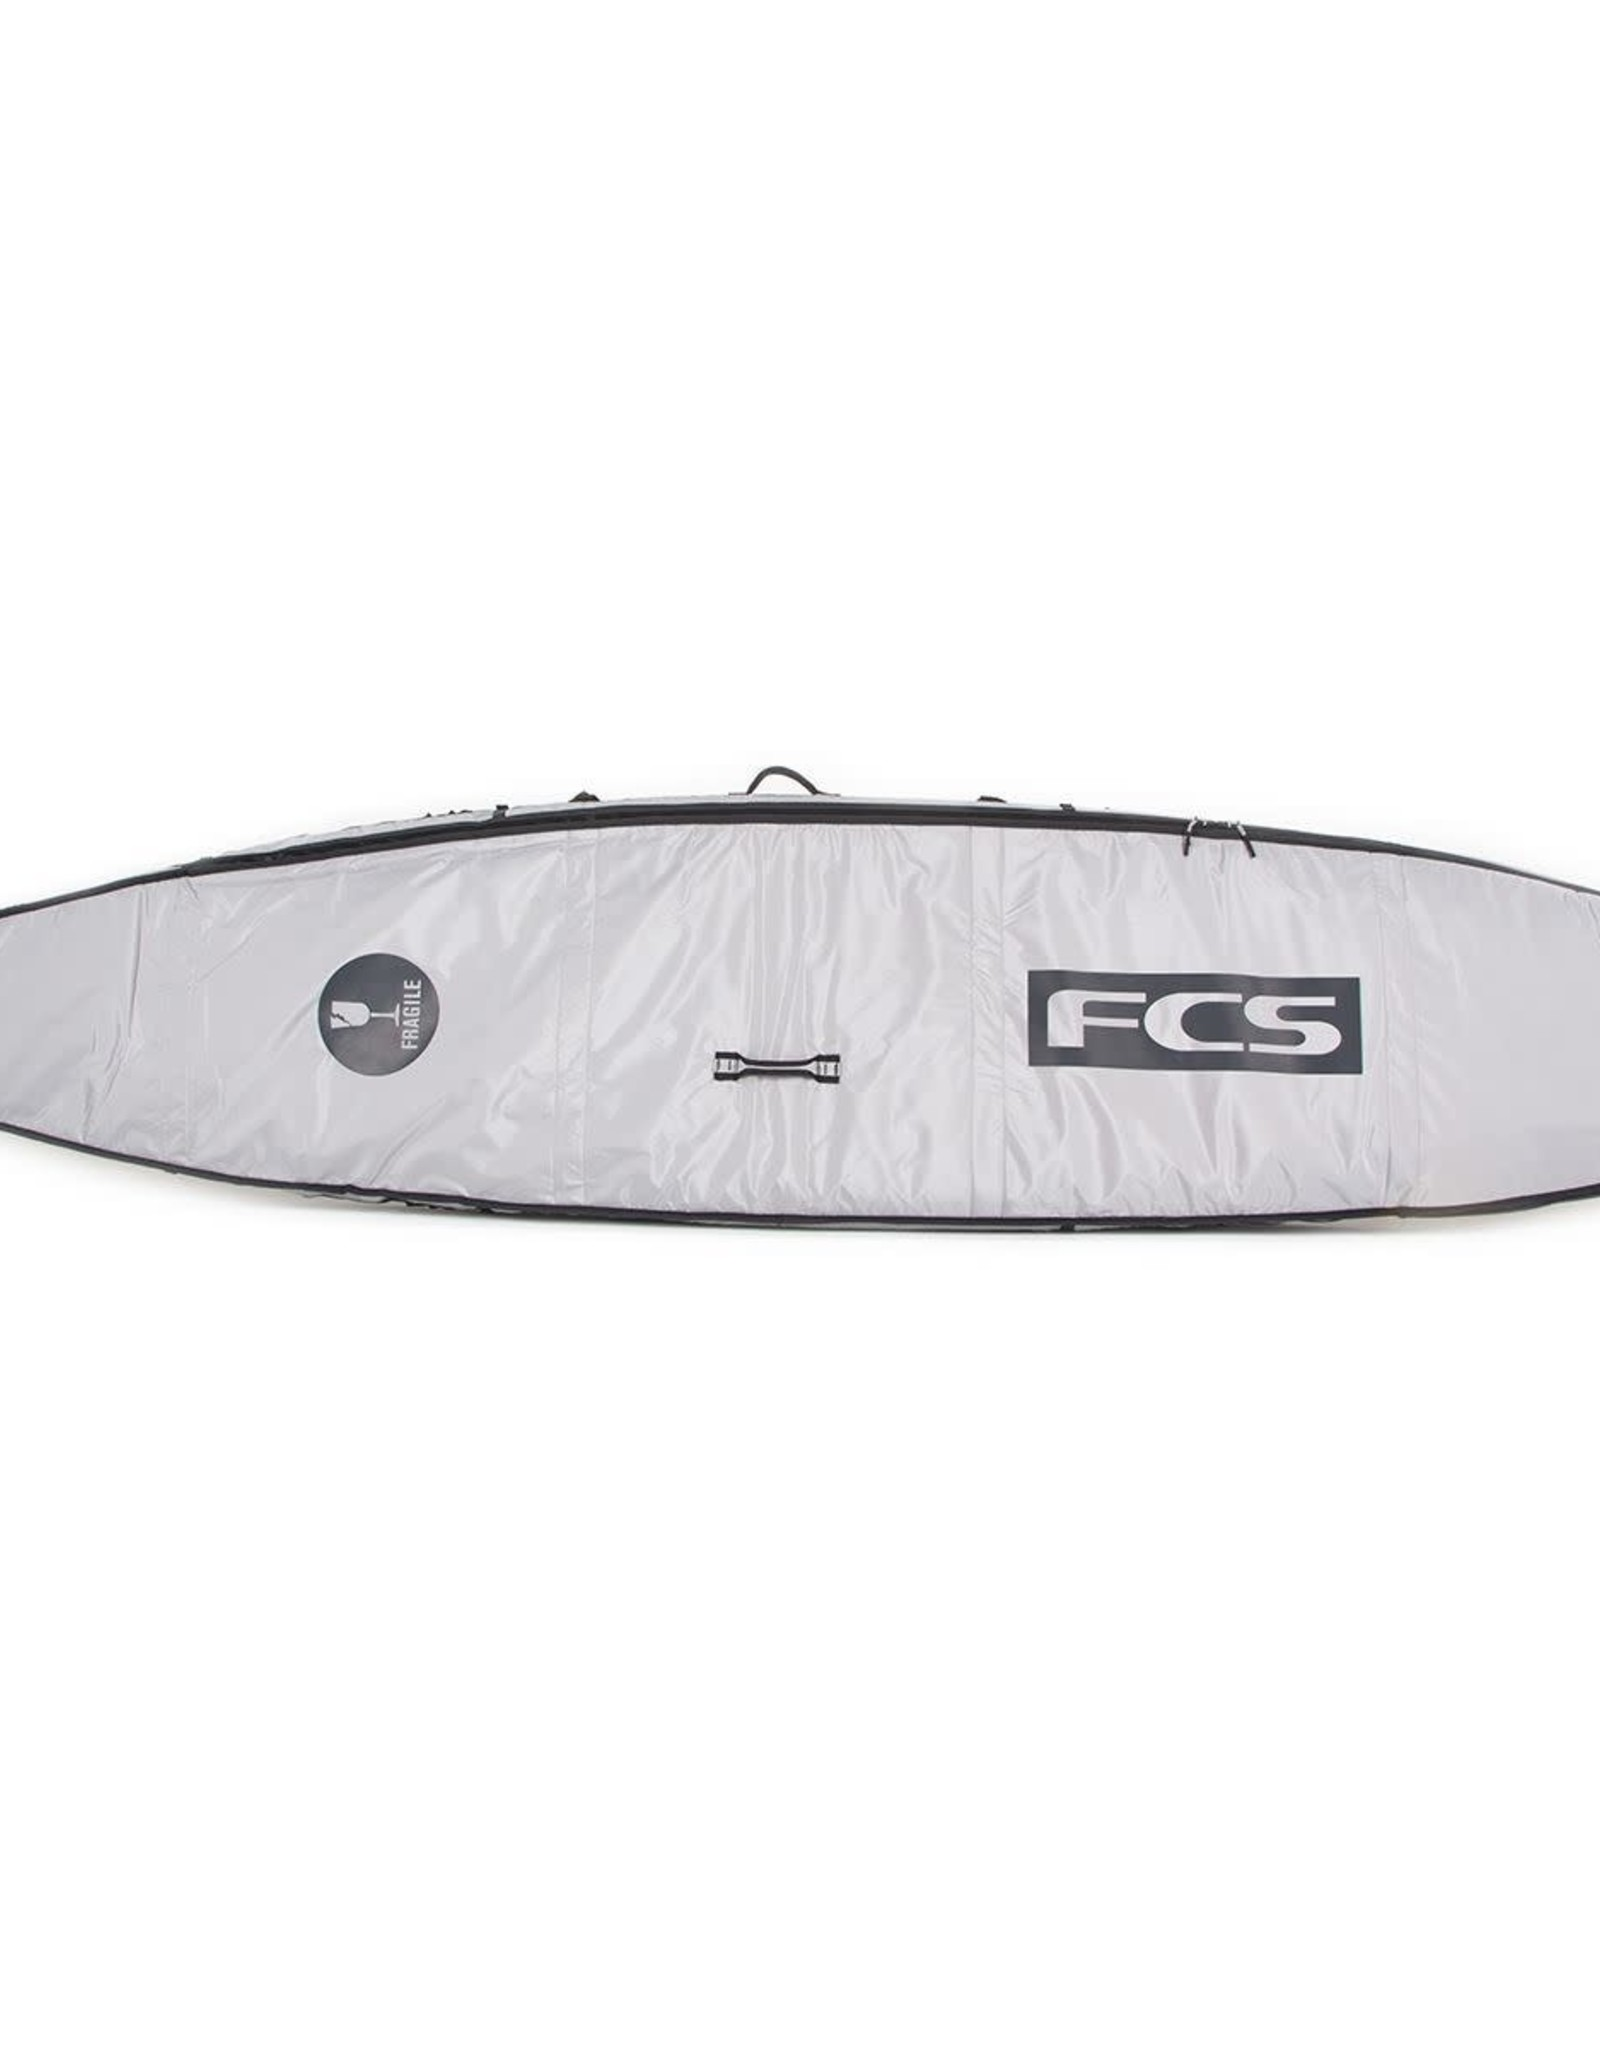 Starboard FCS 14' SUP RACING COVER